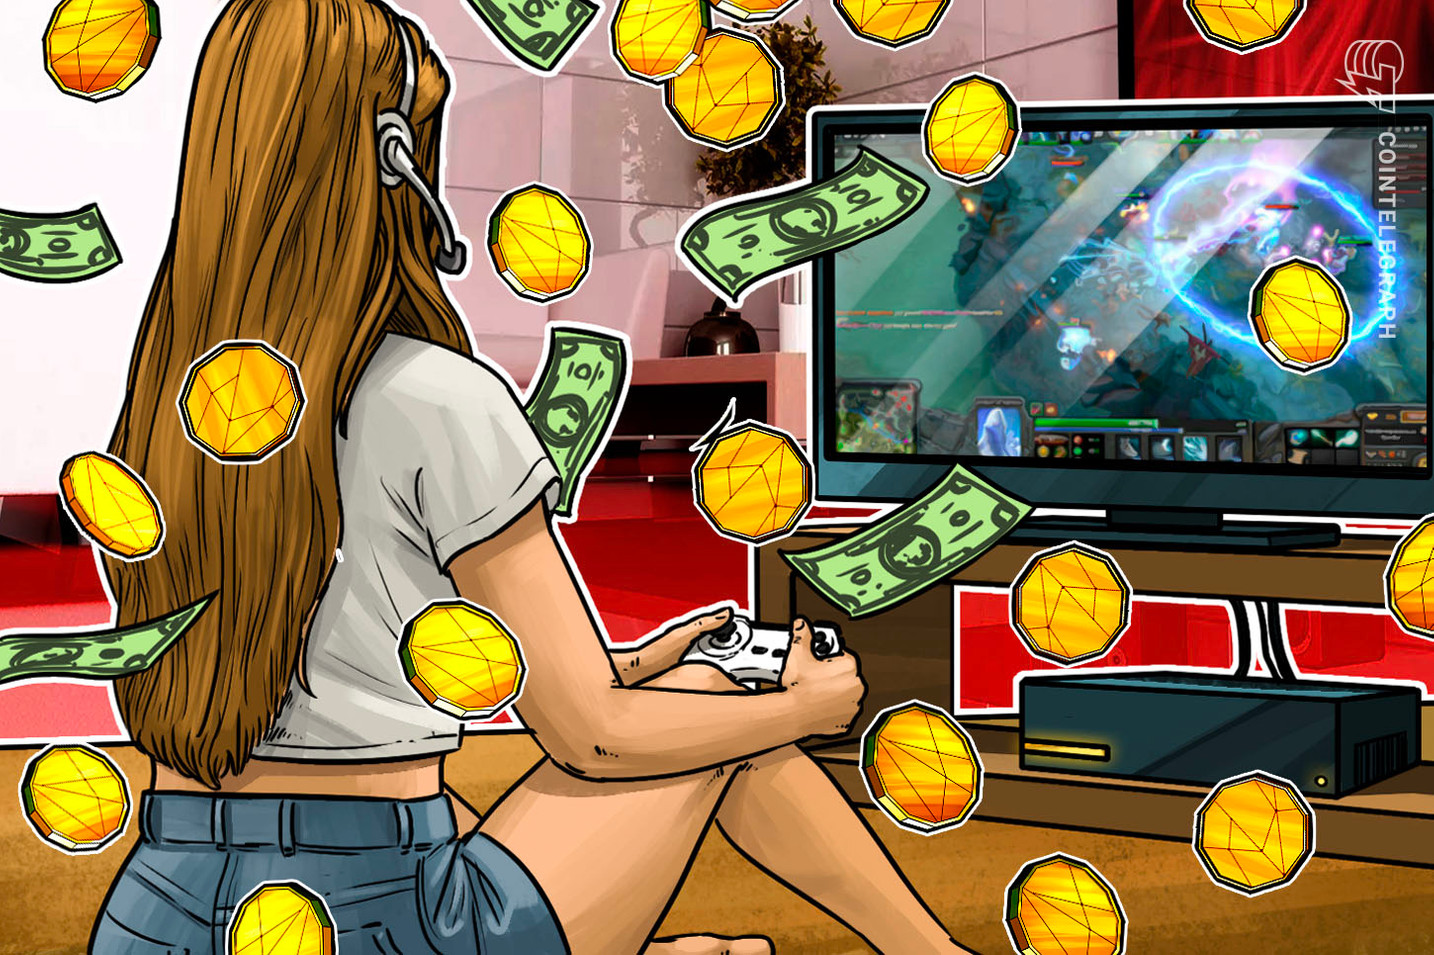 US SEC Approves and Says 8th Grader's 'Quarters' Tokens Aren't a Security